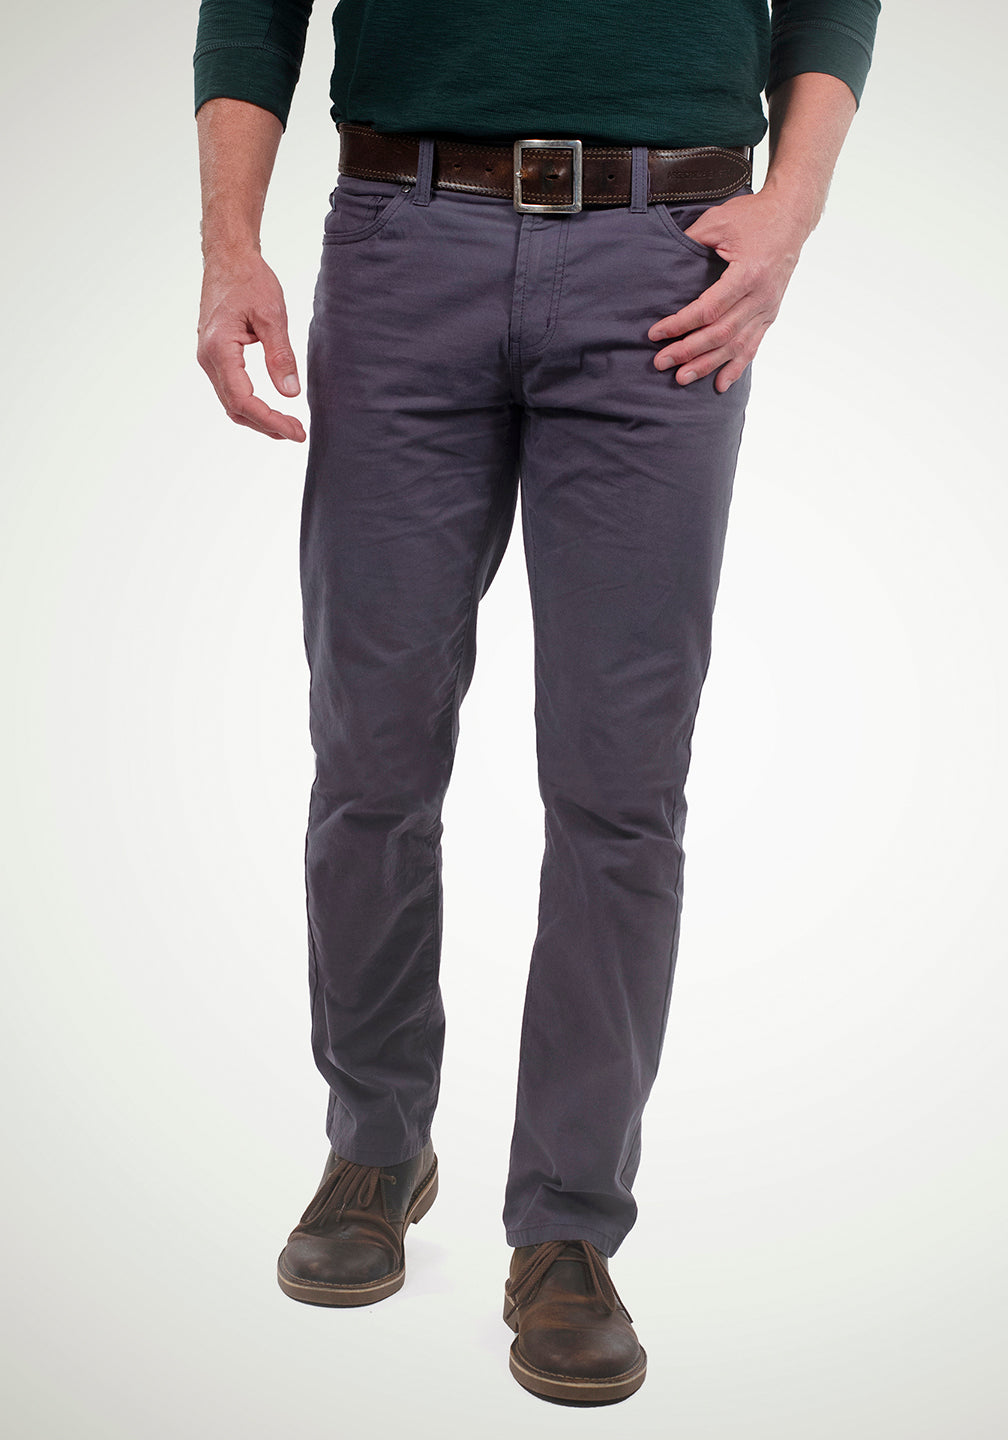 Front View Airotec® Performance Stretch Chino Pant - Fall Weight in Dark Shadow